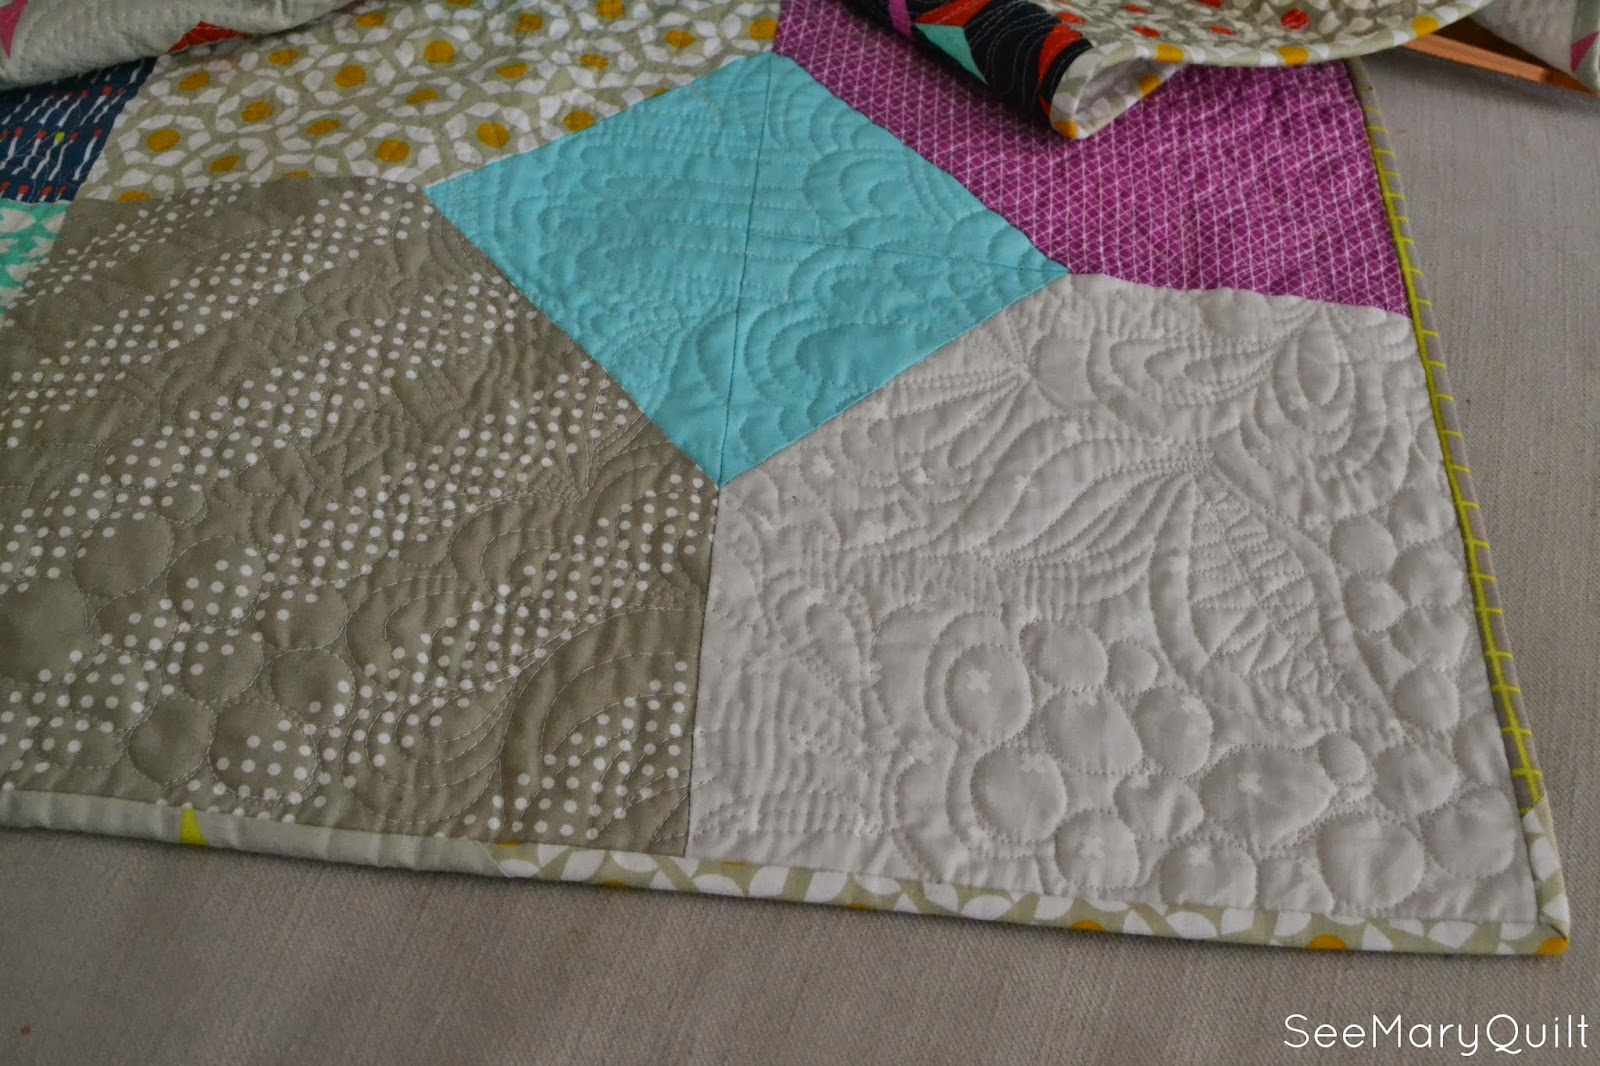 Layers%2Bof%2BCharm%2Bwhite%2Bblock%2Bquilting%2Bdetail.jpg